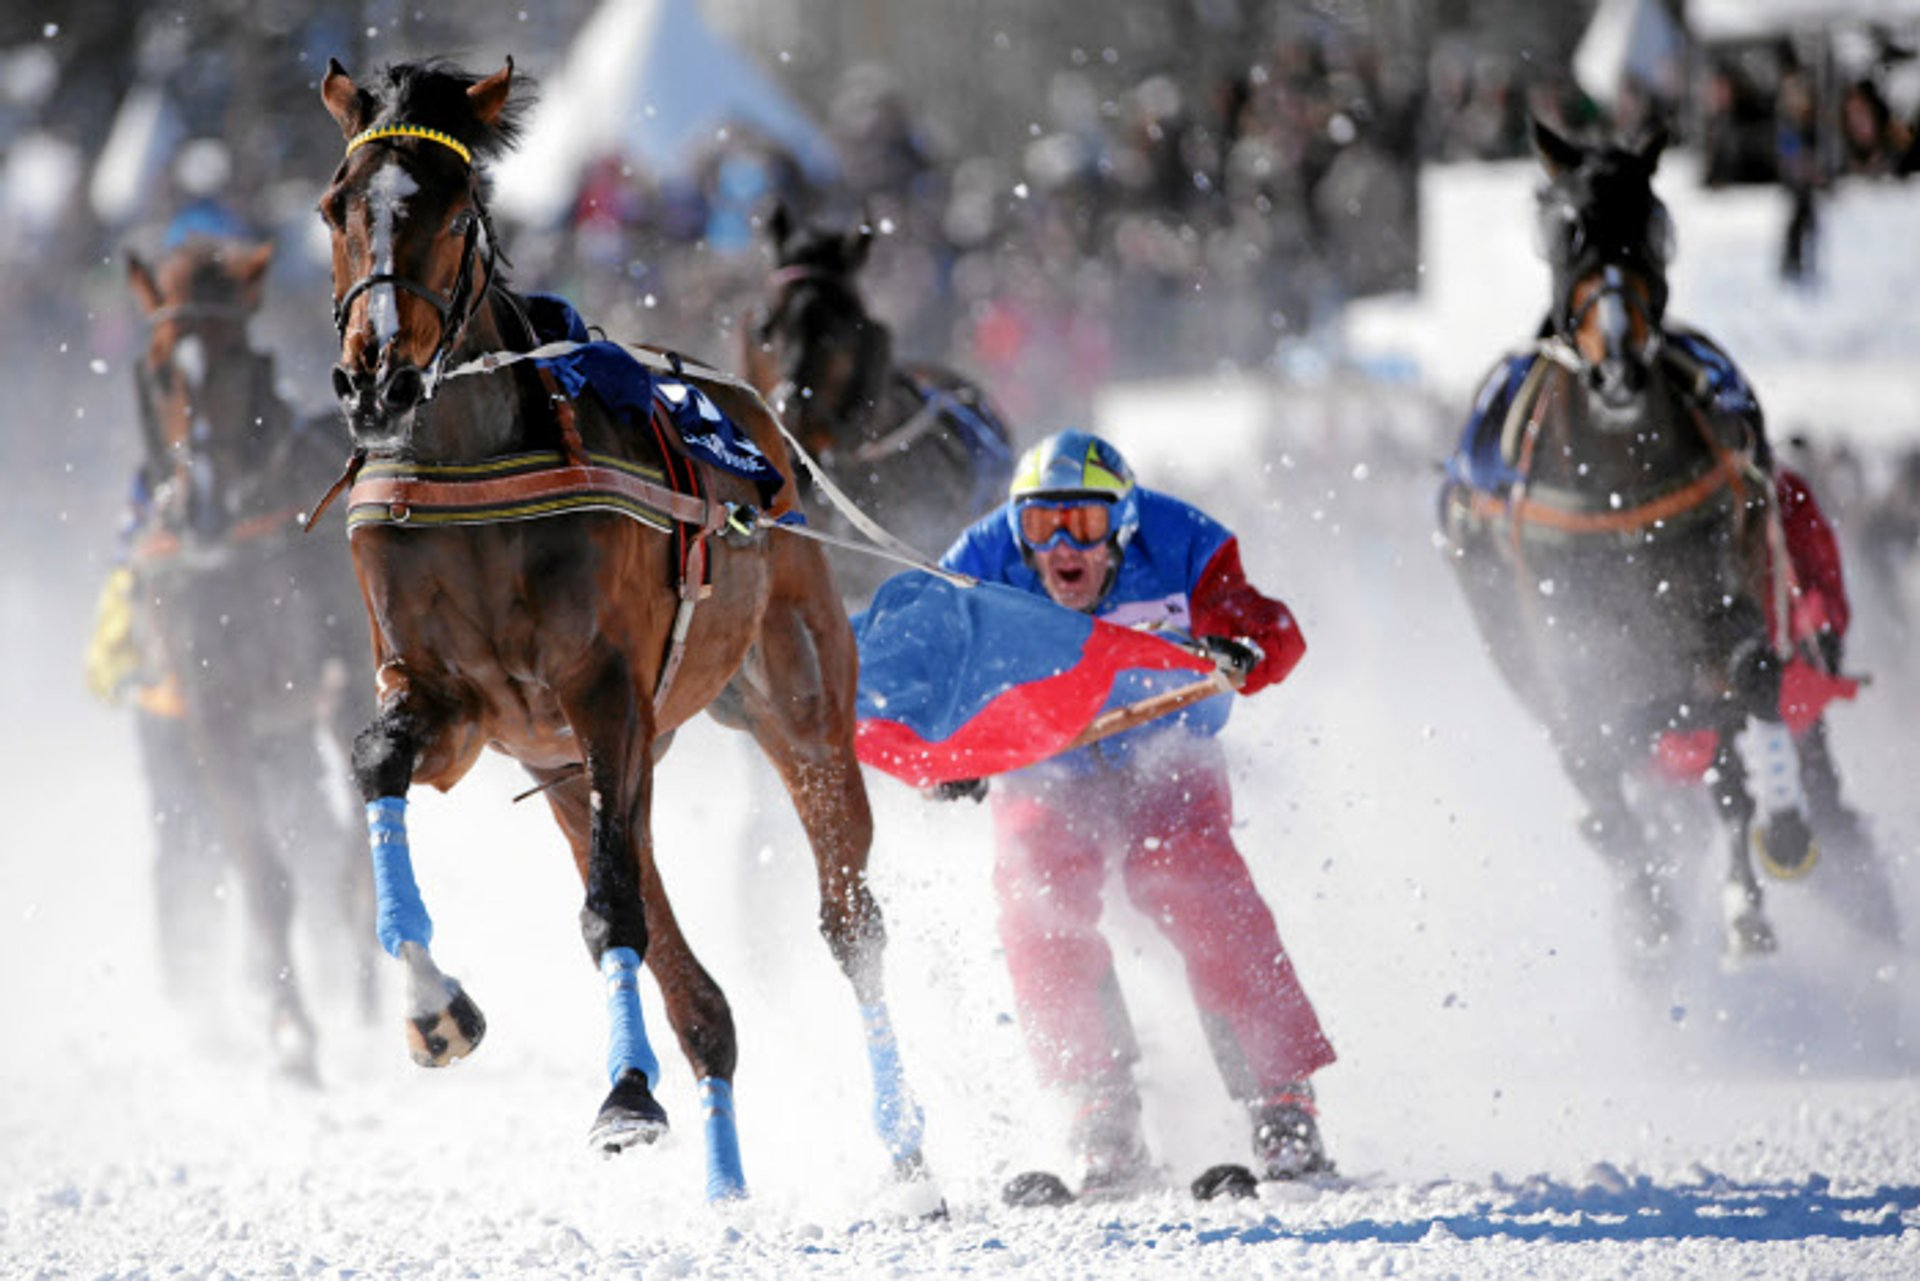 Best time for White Turf St. Moritz 2019